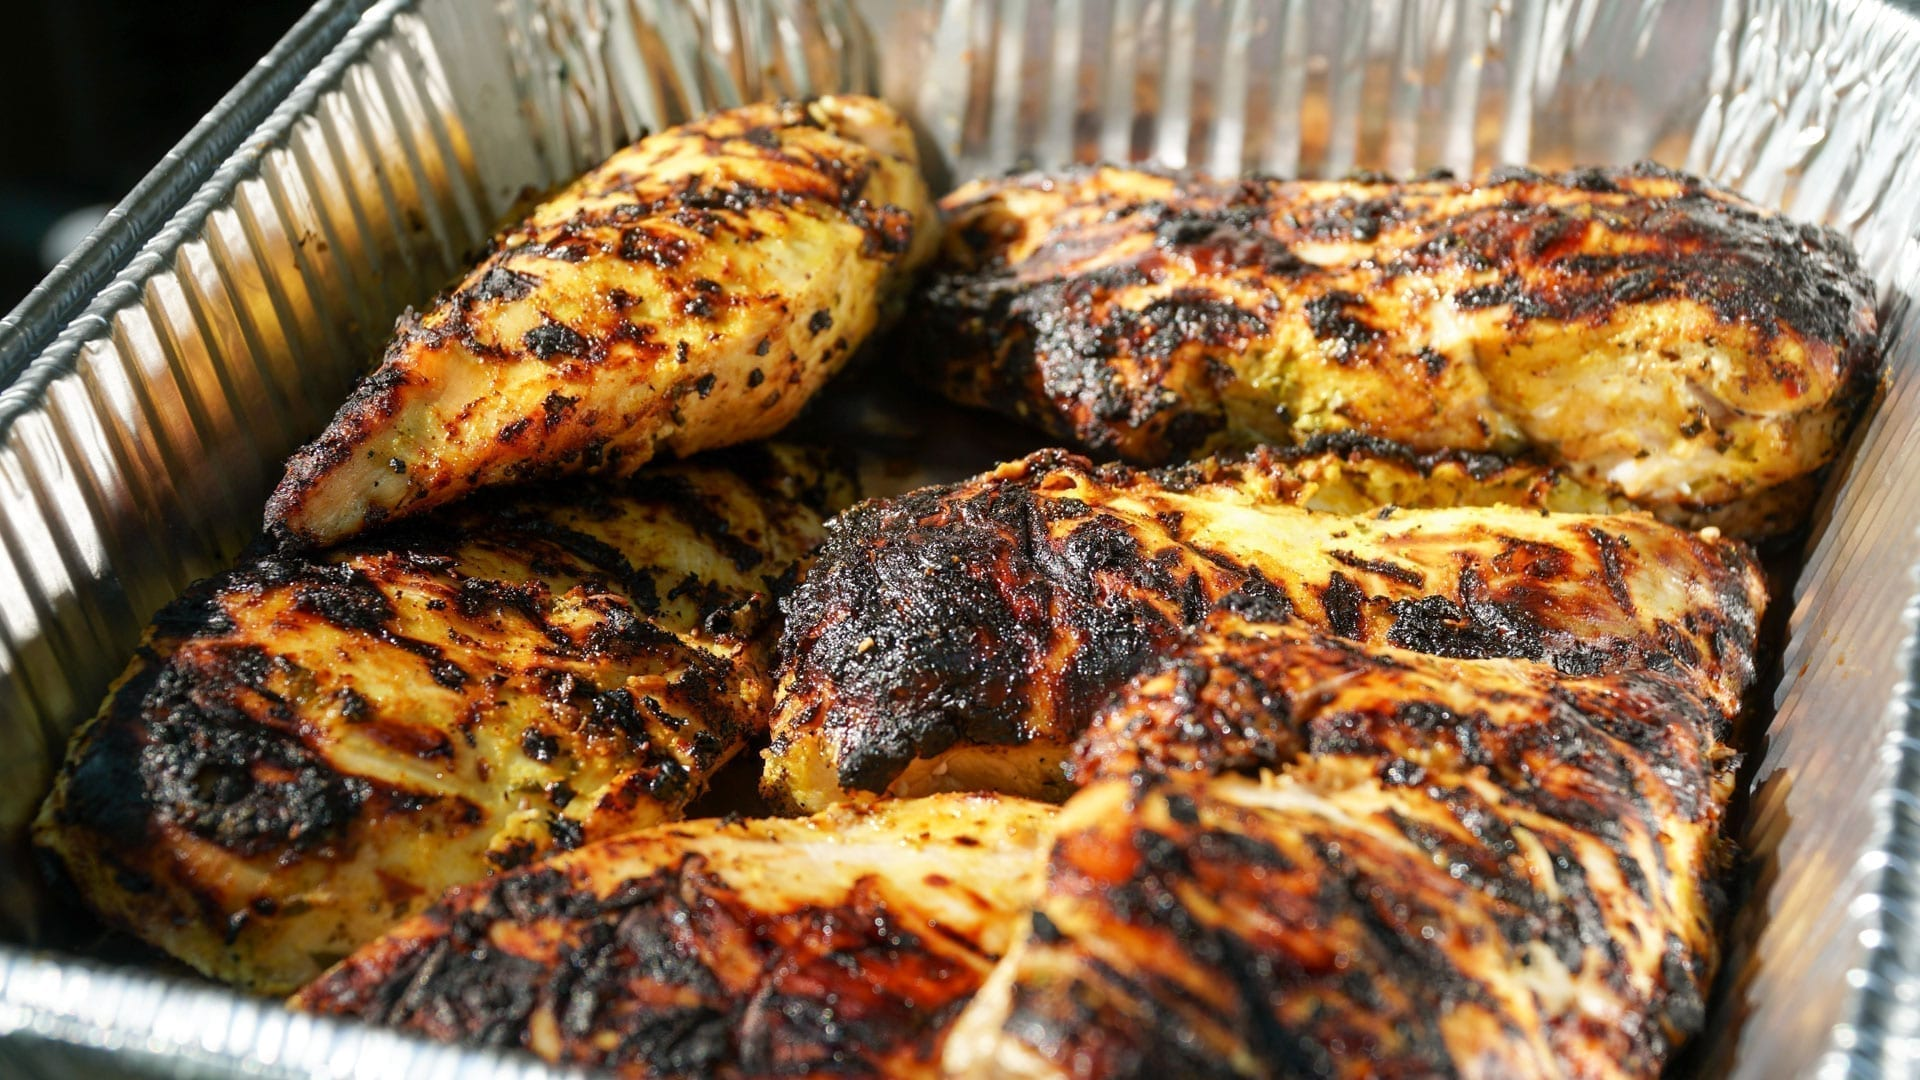 Alan's Chicken Breast Marinade